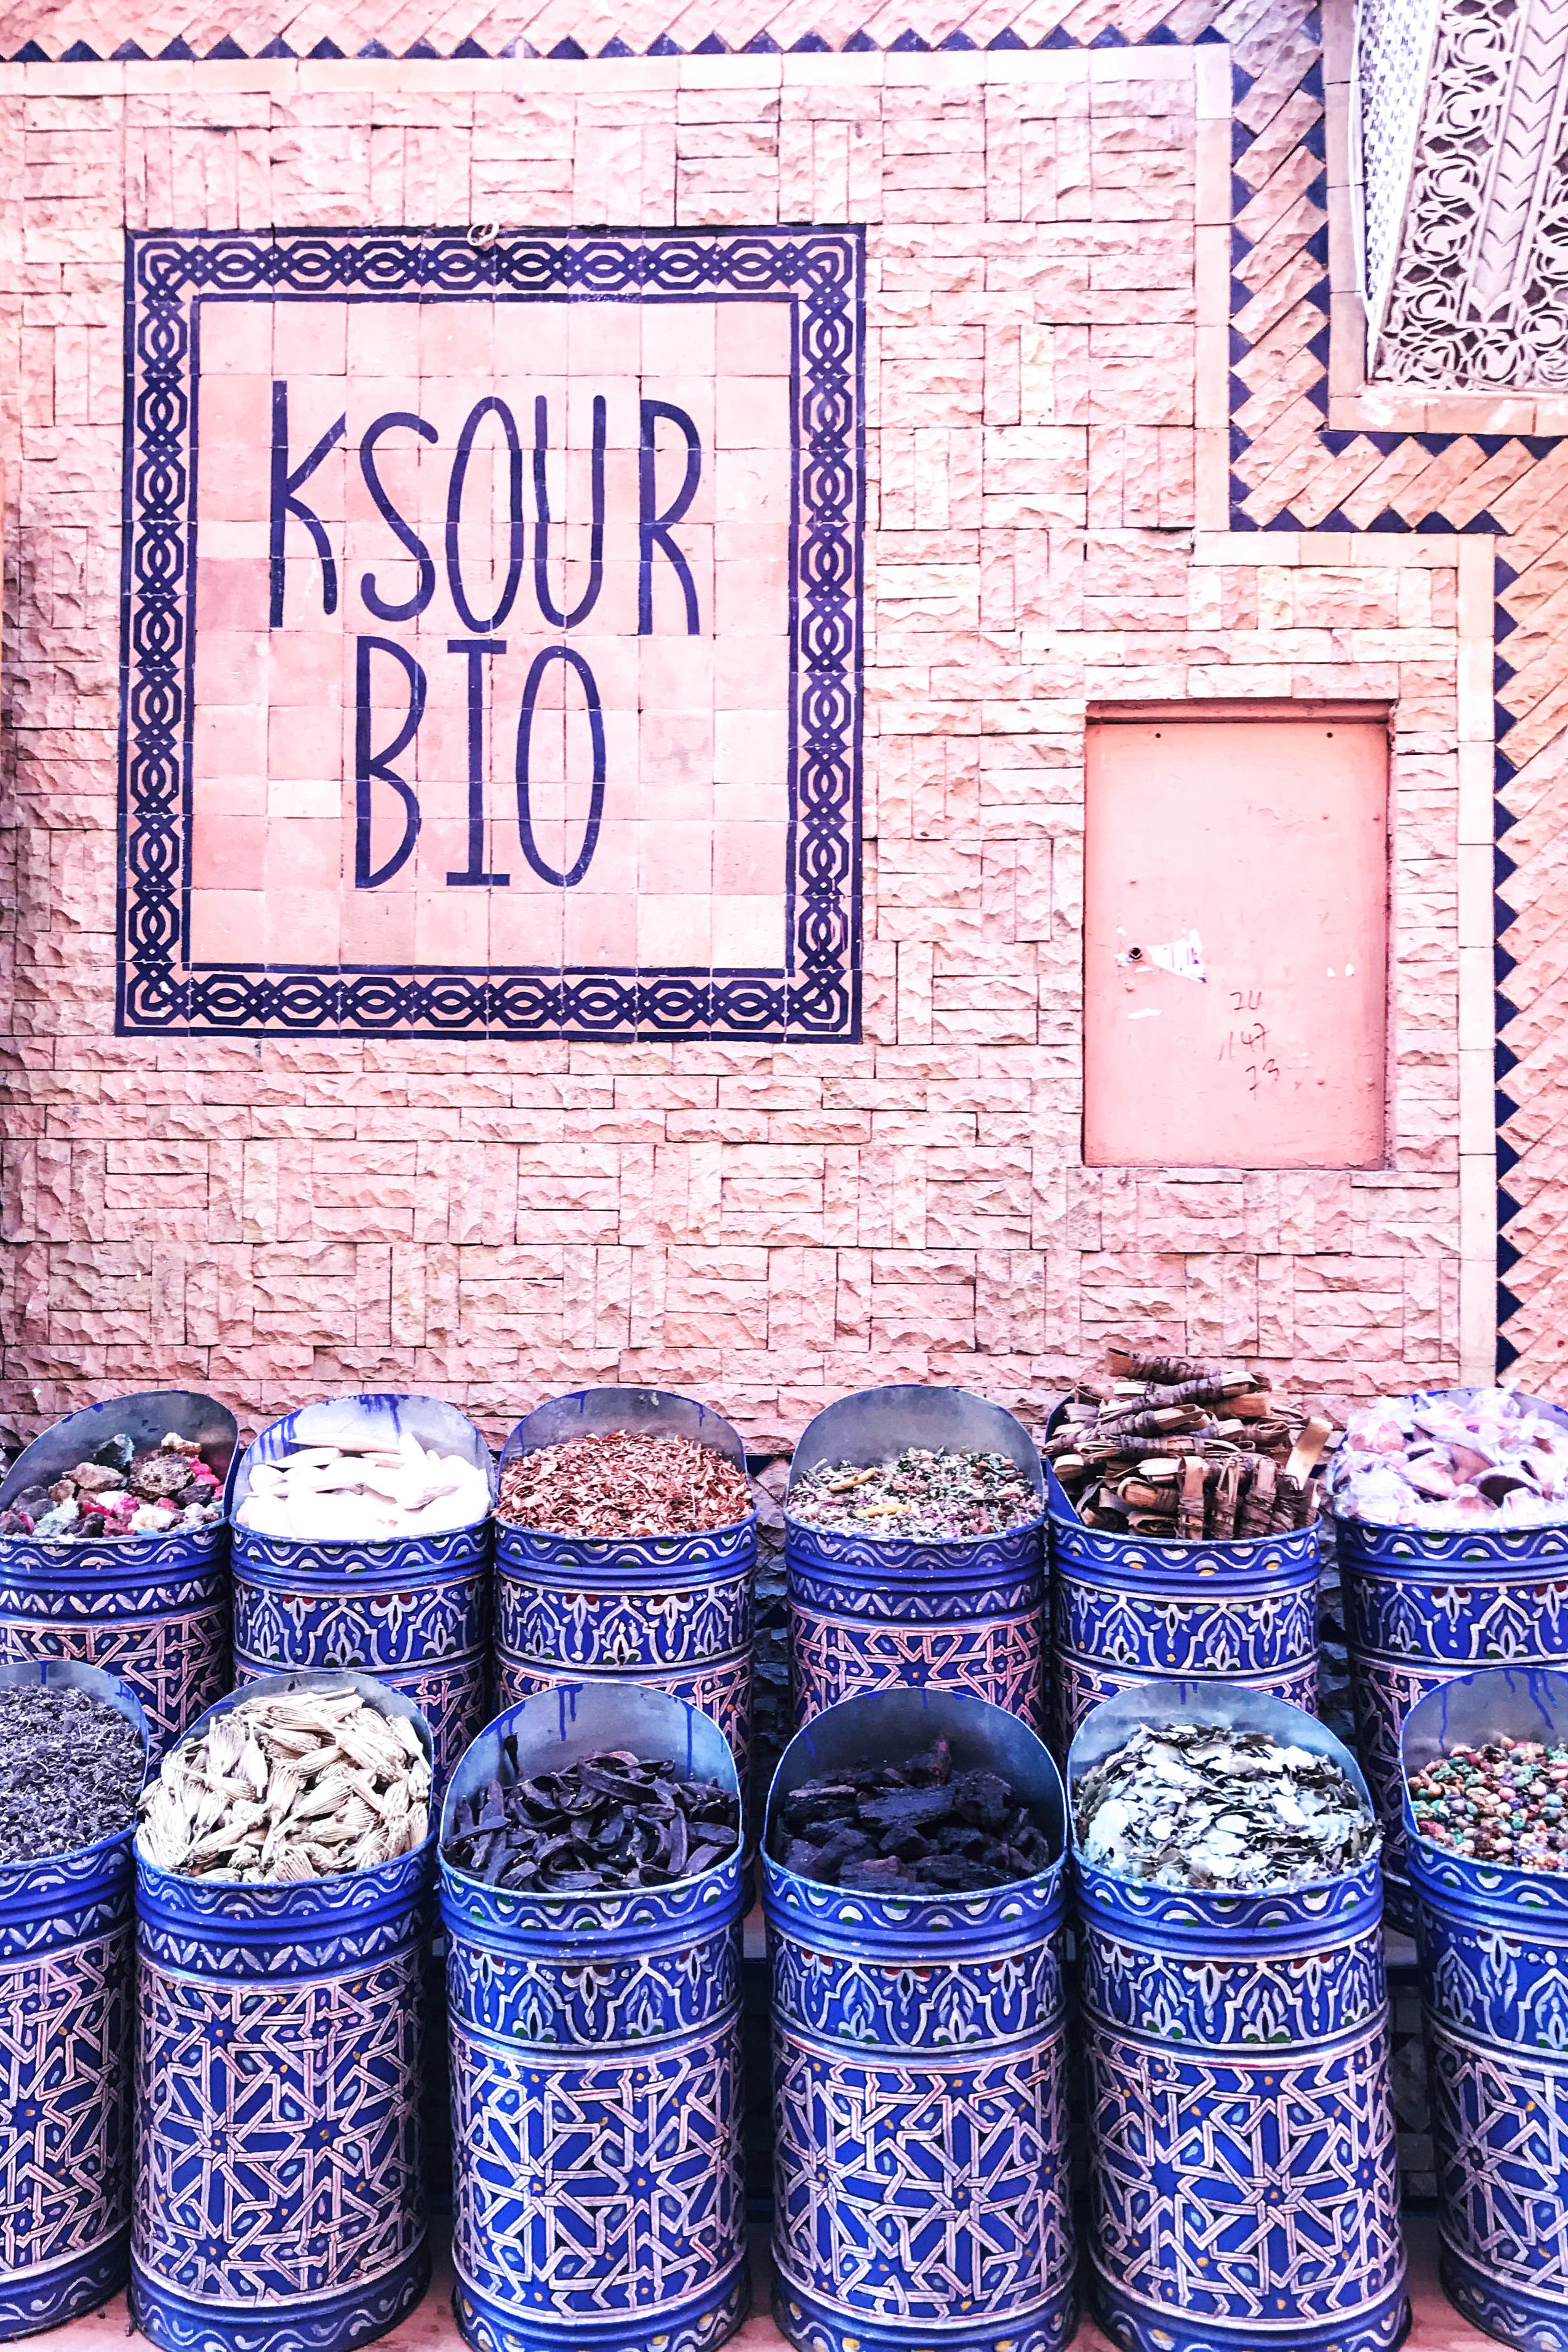 Marrakech_spices